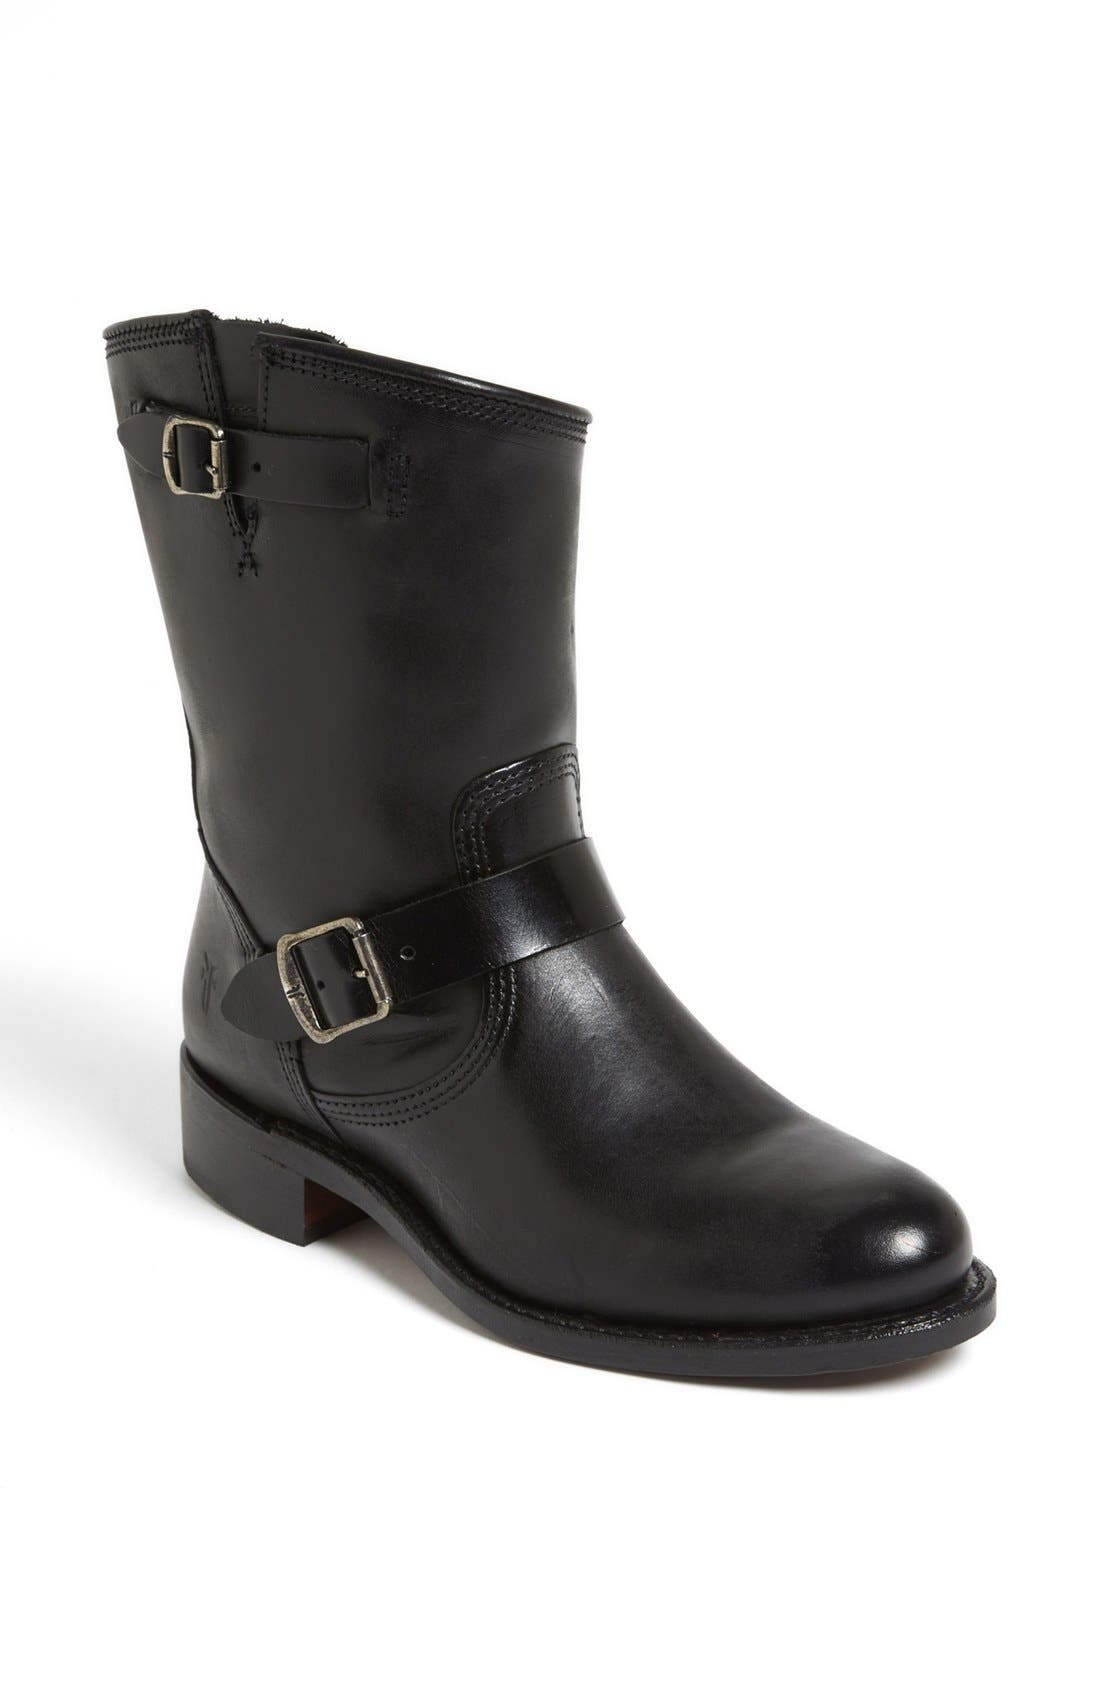 Alternate Image 1 Selected - Frye 'Jet Engineer' Boot (Limited Edition)